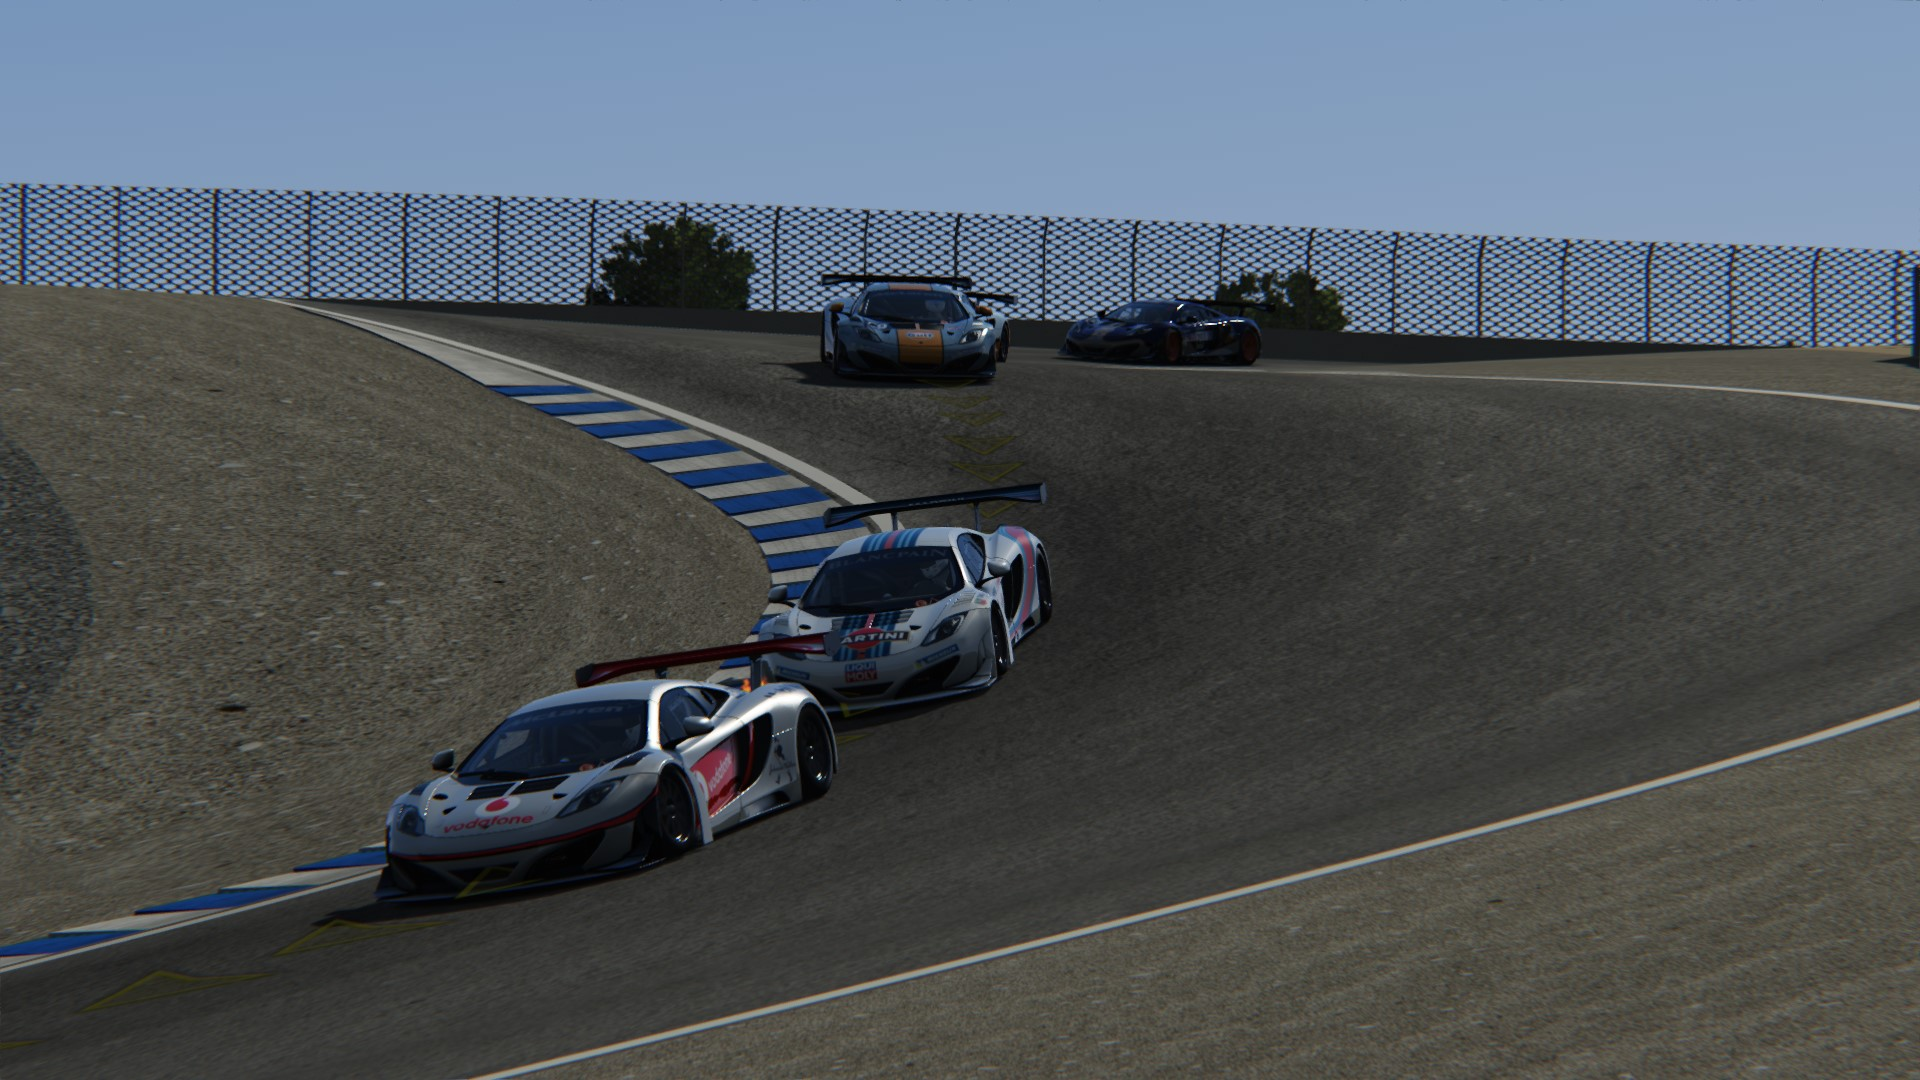 Screenshot_mclaren_mp412c_gt3_bs_lagunaseca_29-5-116-16-44-11.jpg